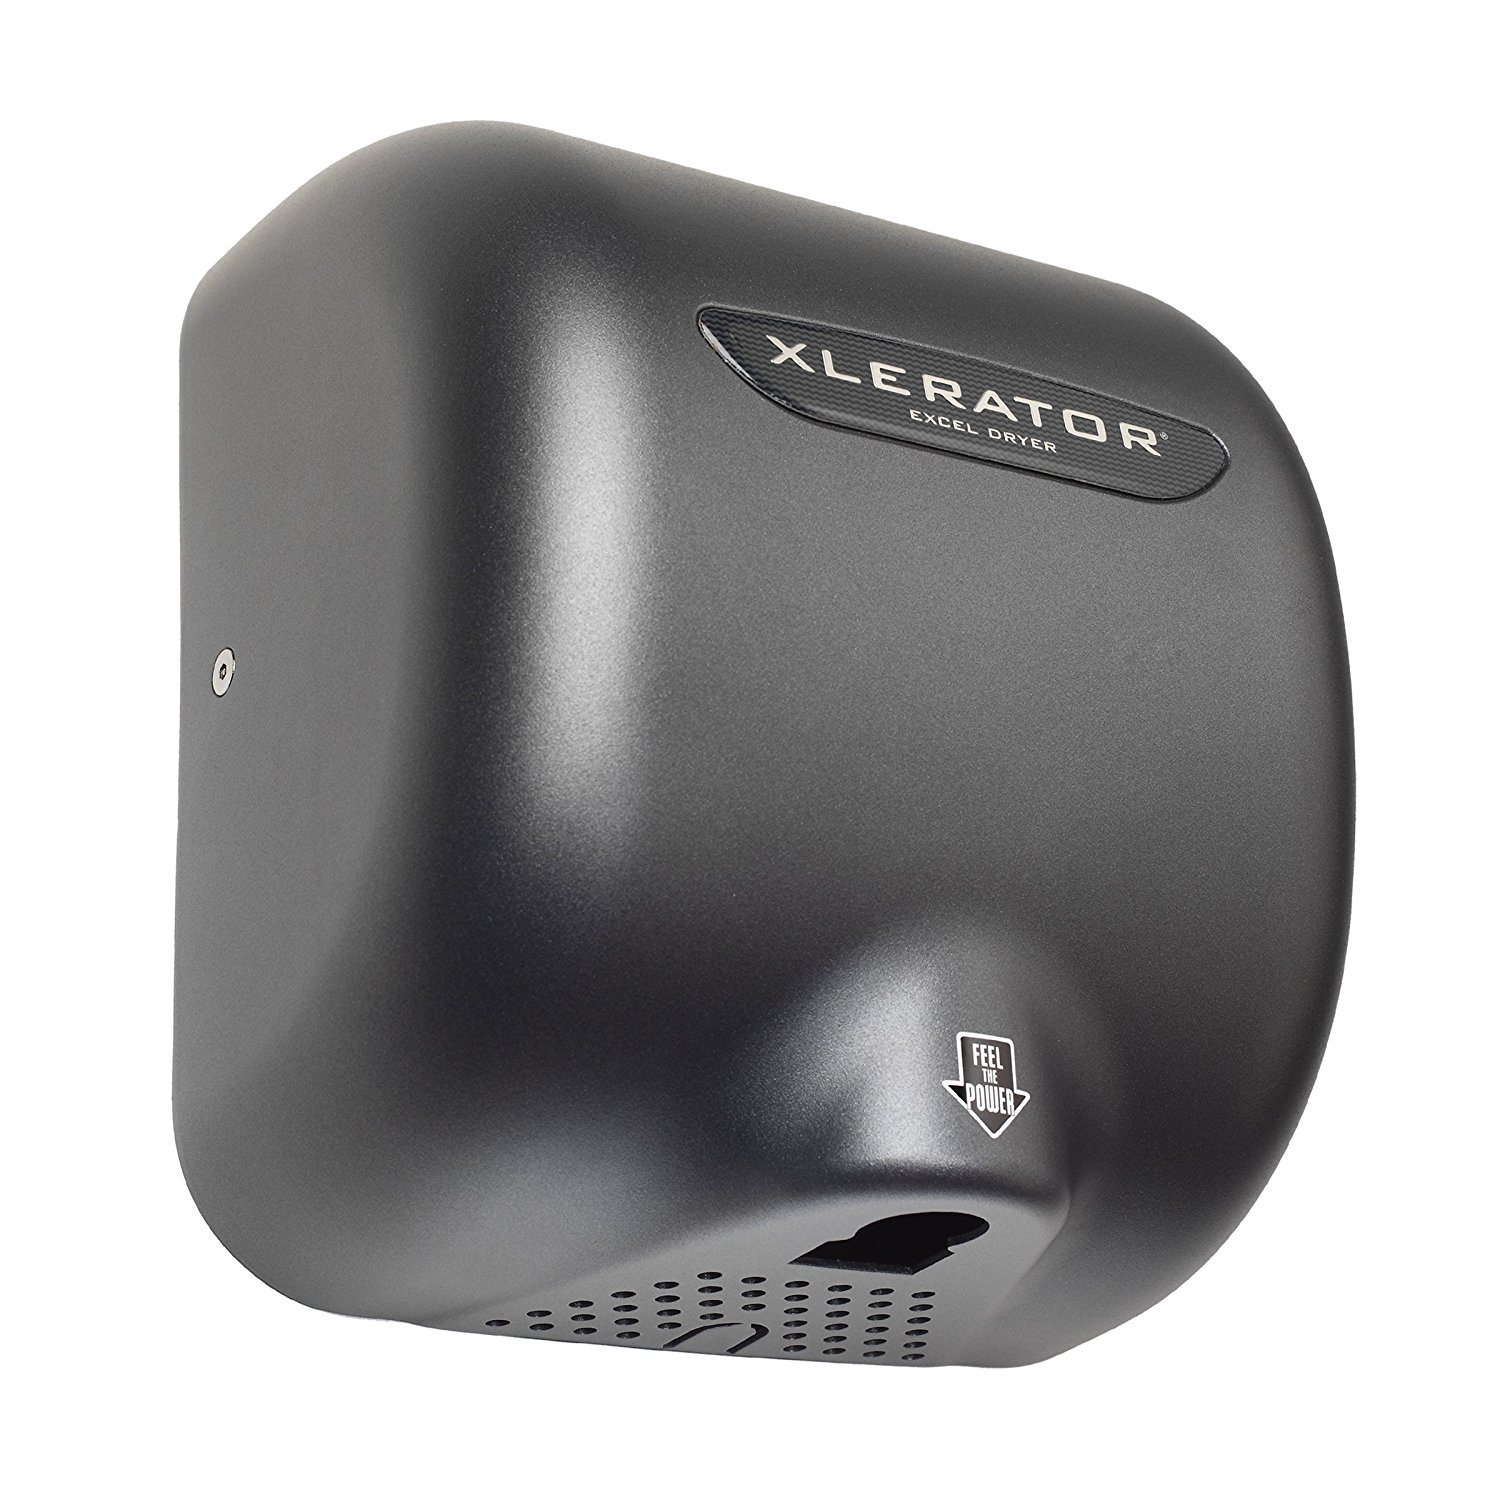 Excel Dryer XL-GR Xlerator Hand Dryer with 1.1 Noise Reduction Nozzle and Graphite Cover, 12.5 A, 110/120 V